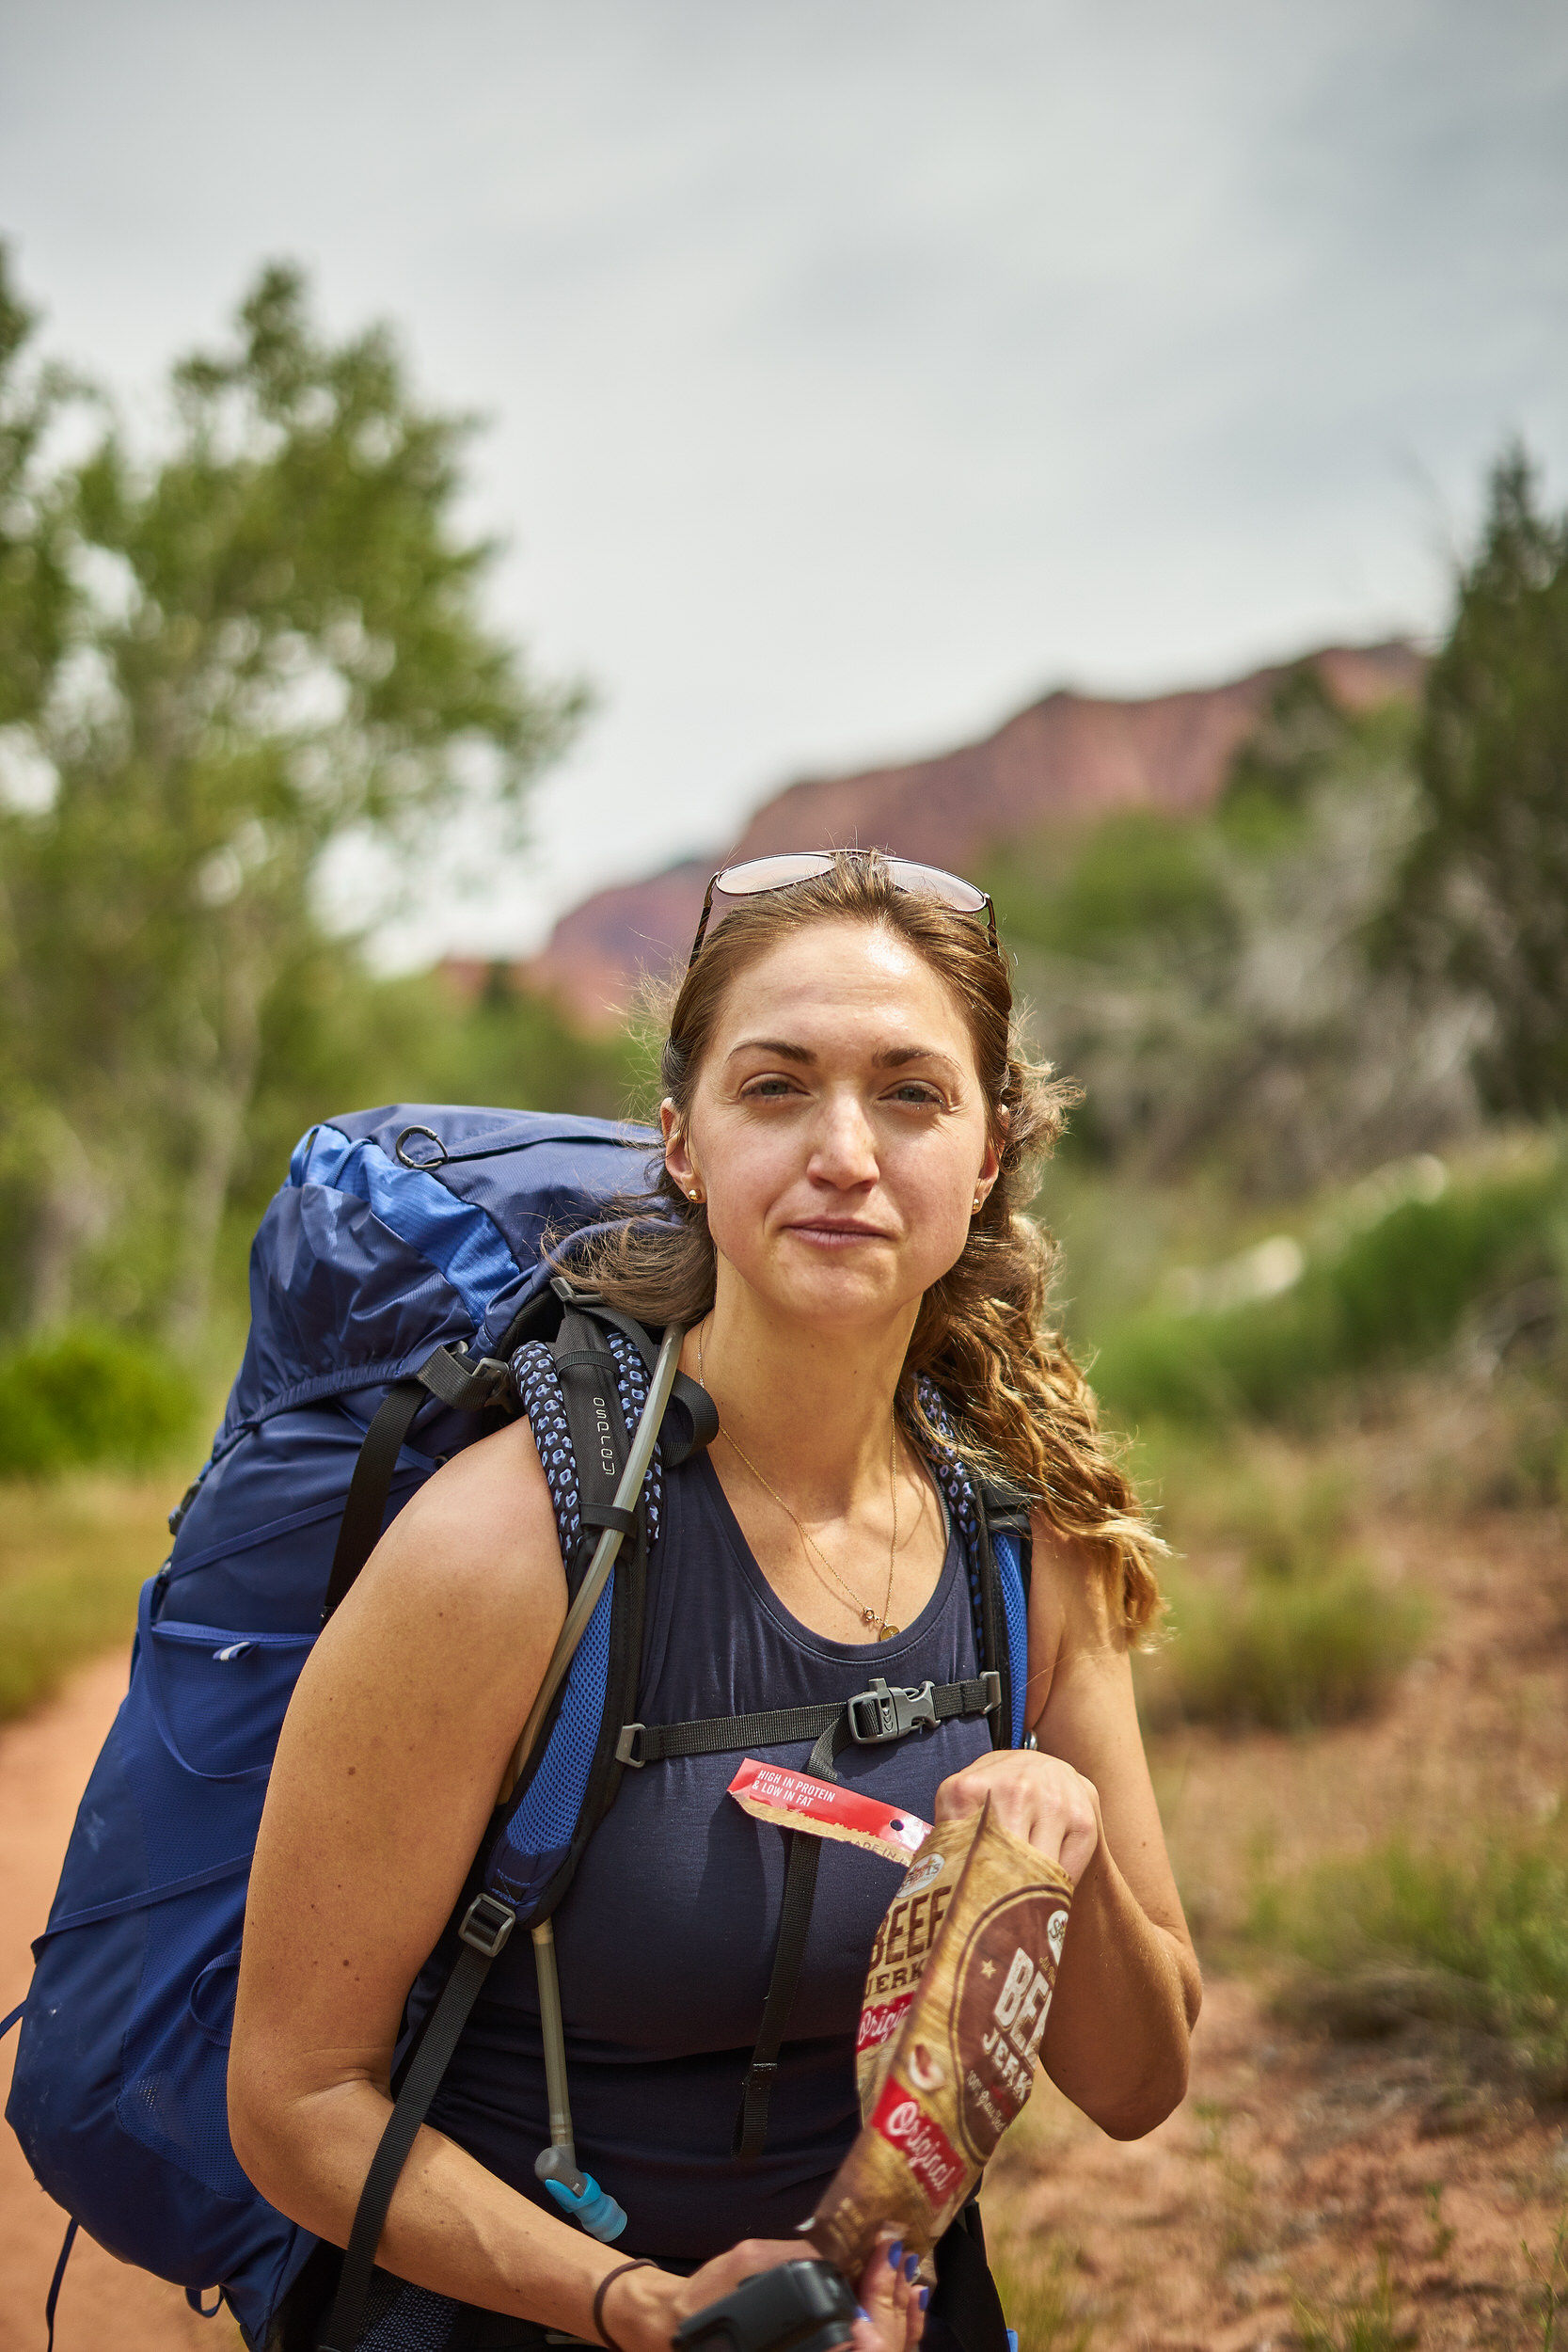 Click through for a complete guide to Kolob Canyon hiking and backpacking by Amanda Outside - you're go-to source for hiking and camping trips. Kolob Canyon is a beautiful part of Zion National Park that you have to visit! www.amandaoutside.com